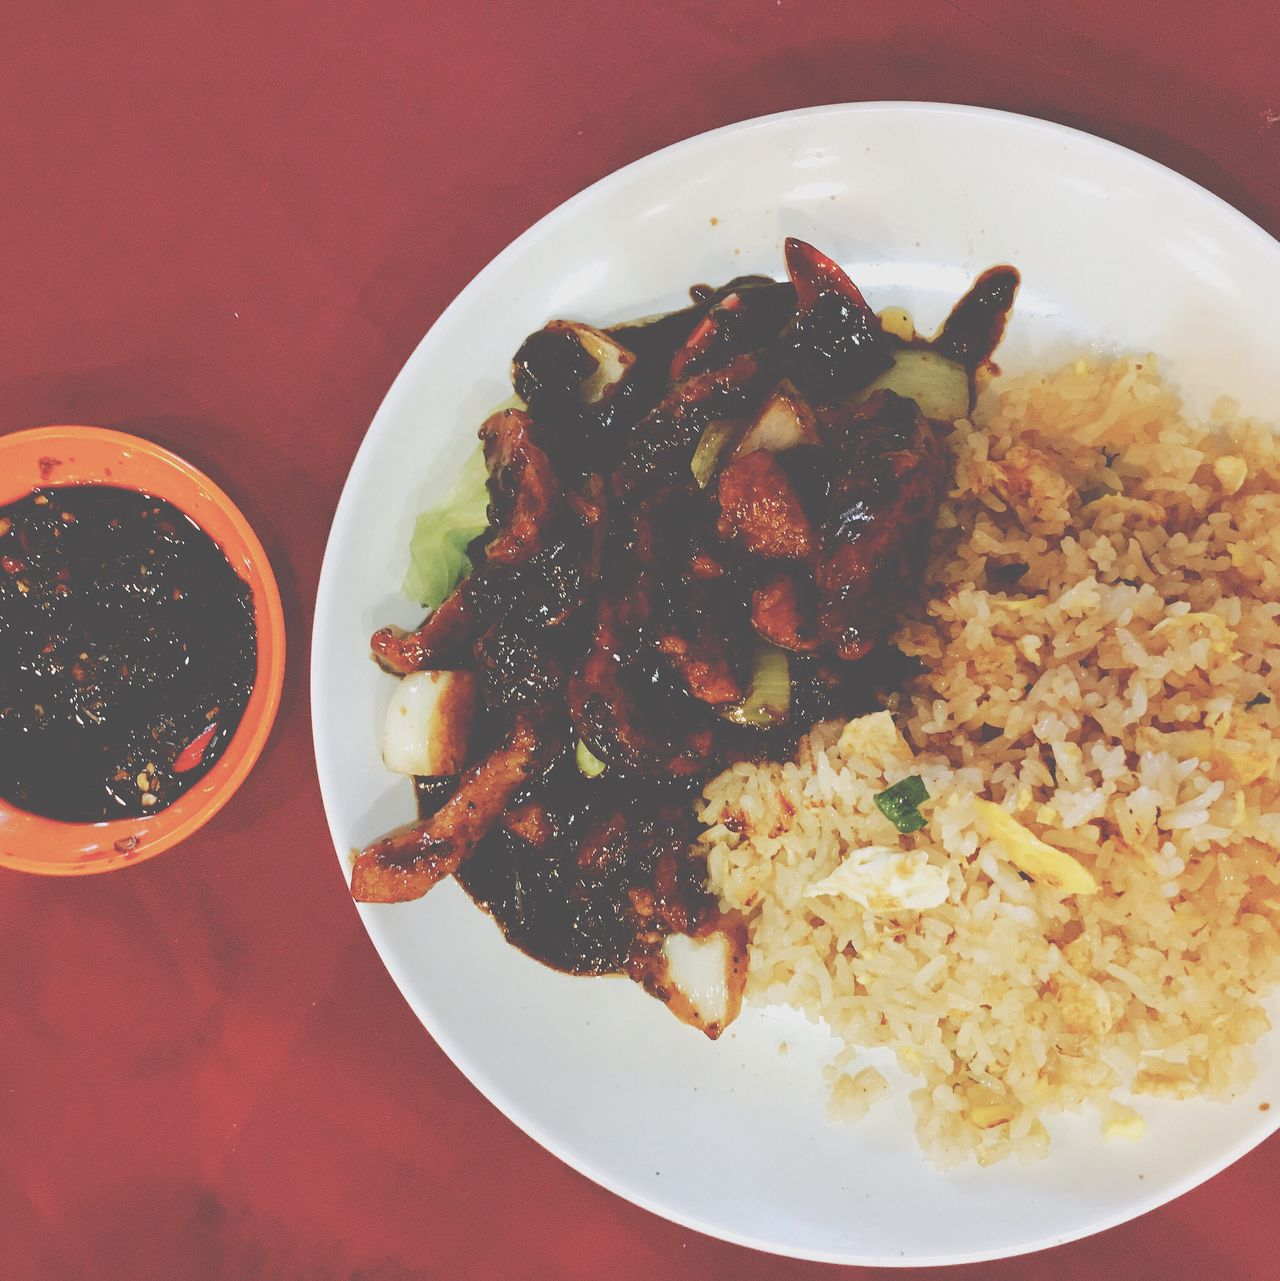 Friedrice Dishes Blackpepperchicken Lunch